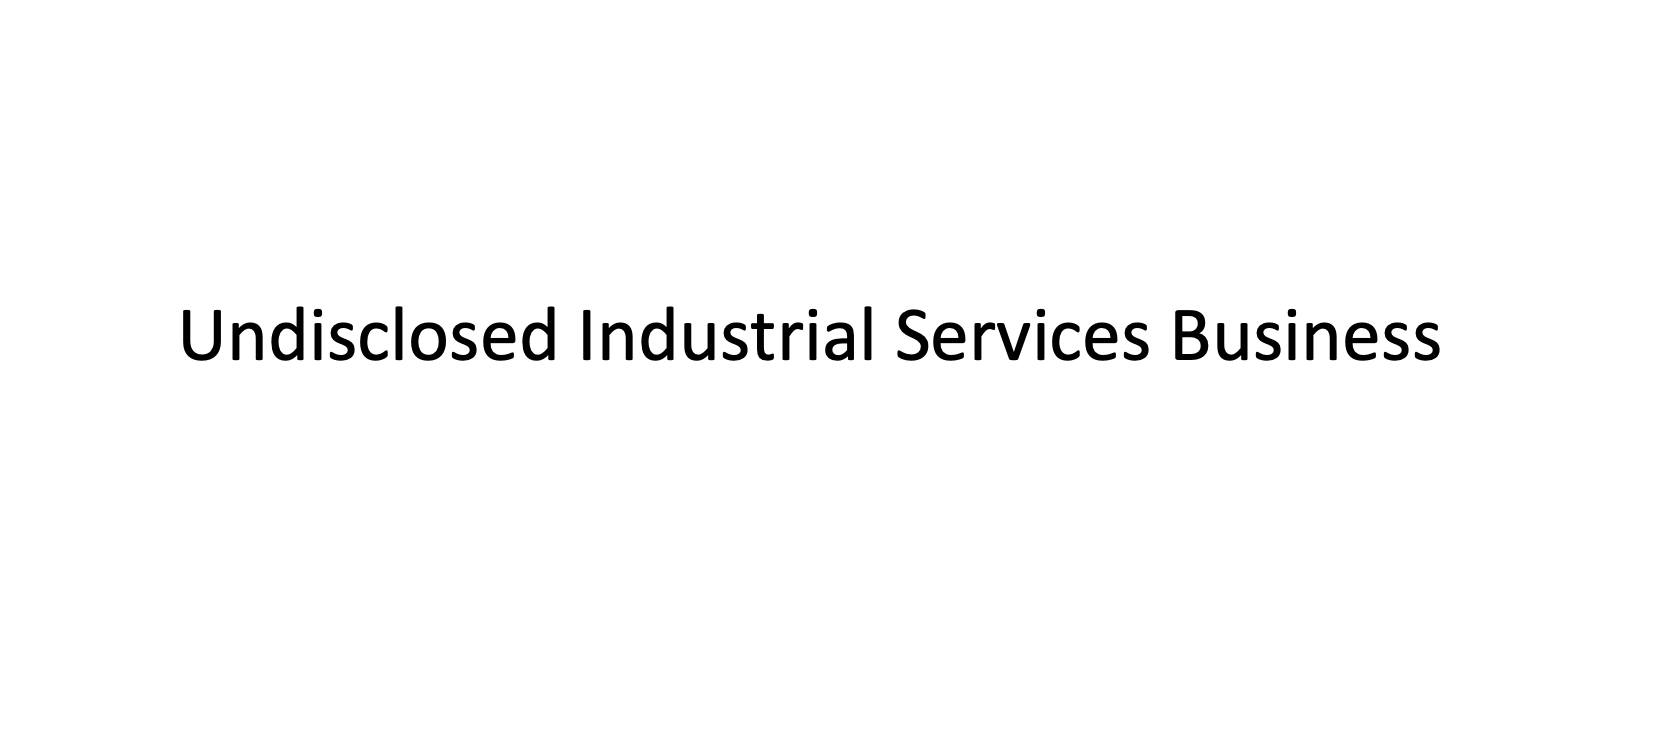 Undisclosed Industrial Services Business